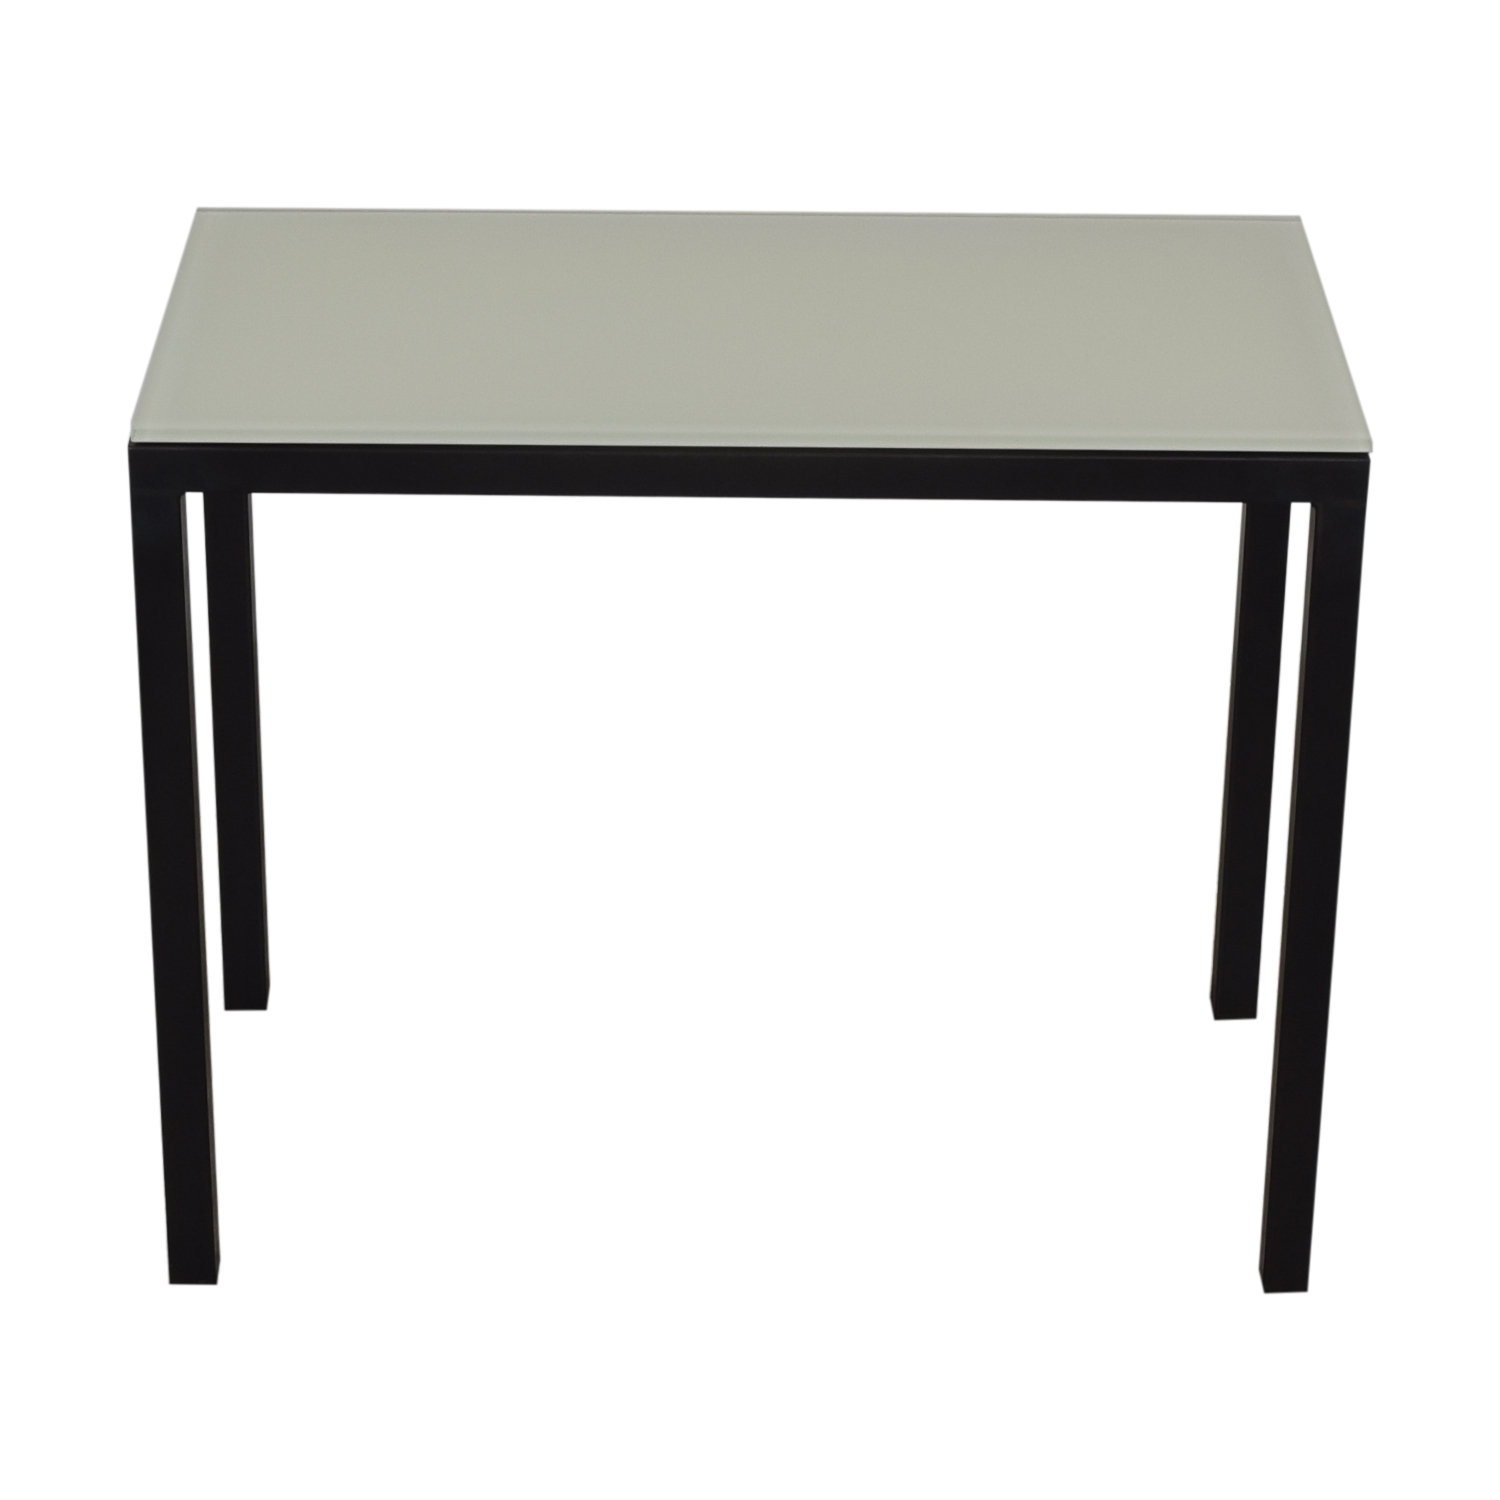 Room & Board Room & Board Parsons Console Table on sale